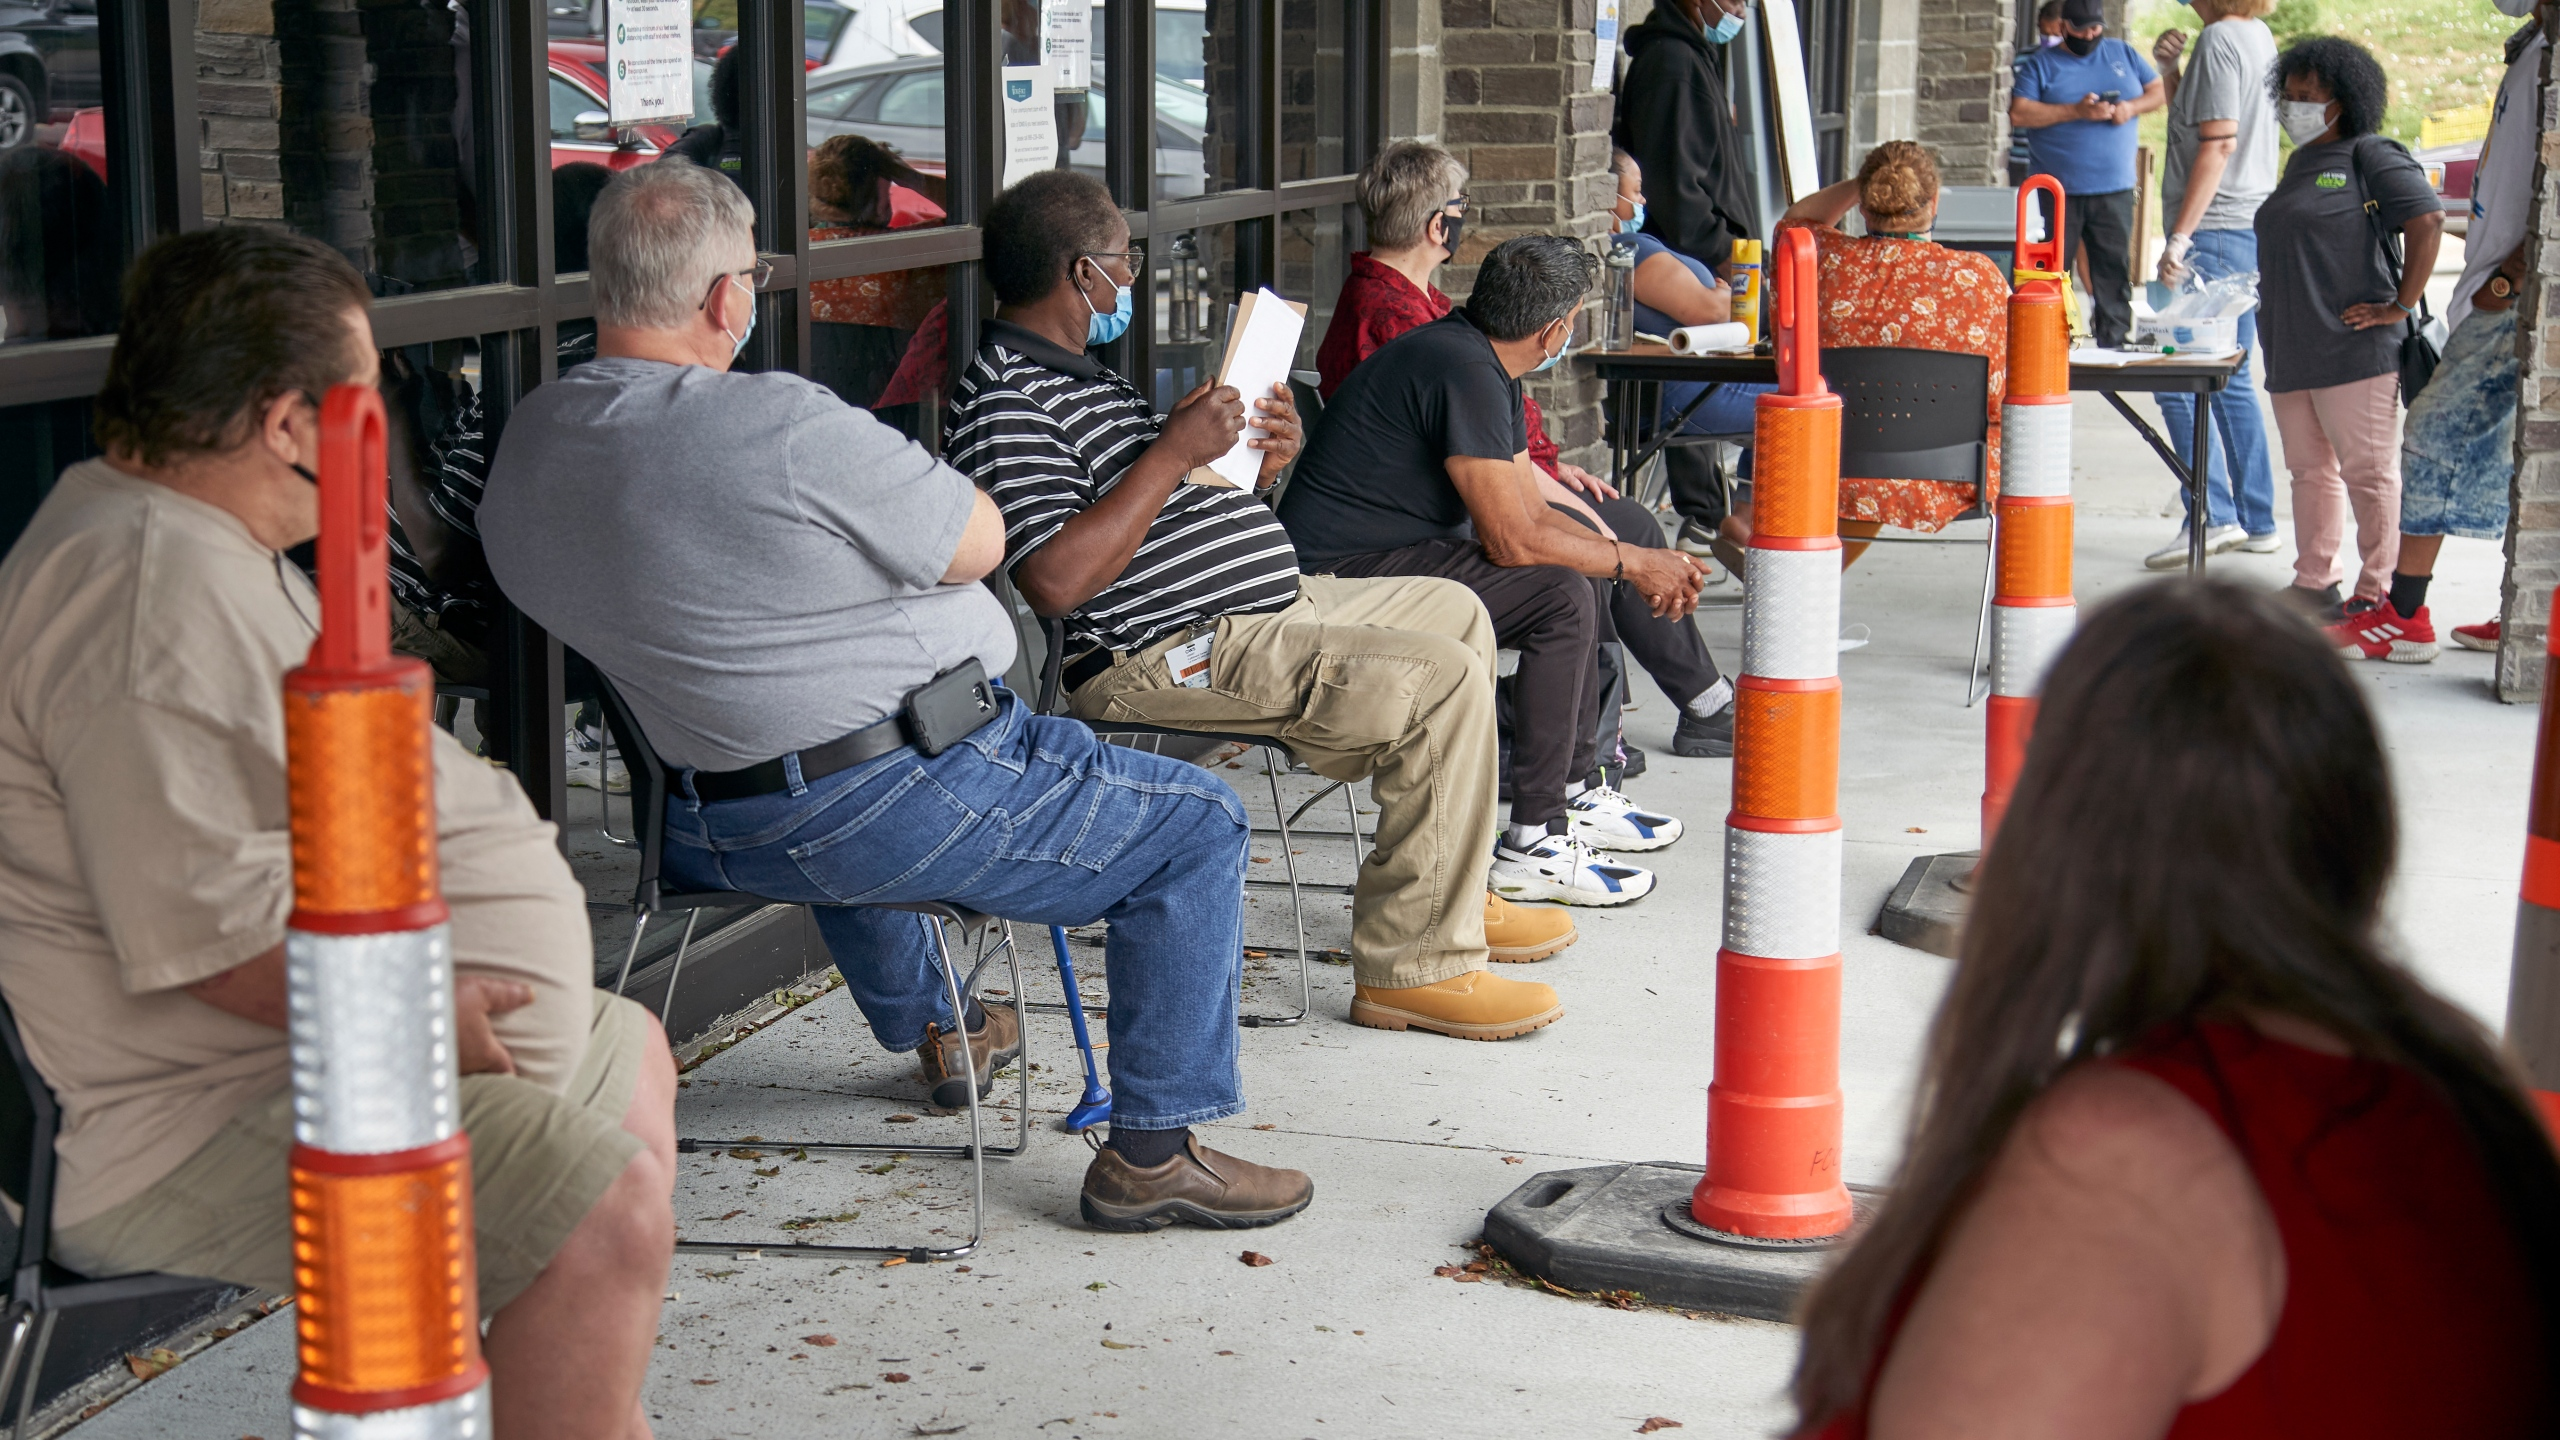 In this July 15, 2020, file photo, job seekers exercise social distancing as they wait to be called into the Heartland Workforce Solutions office in Omaha, Neb. A Republican proposal to slash the $600 weekly benefit boost for those left jobless because of the coronavirus shutdown could result in weeks or even months of delayed payments in some states. (AP Photo/Nati Harnik, File)